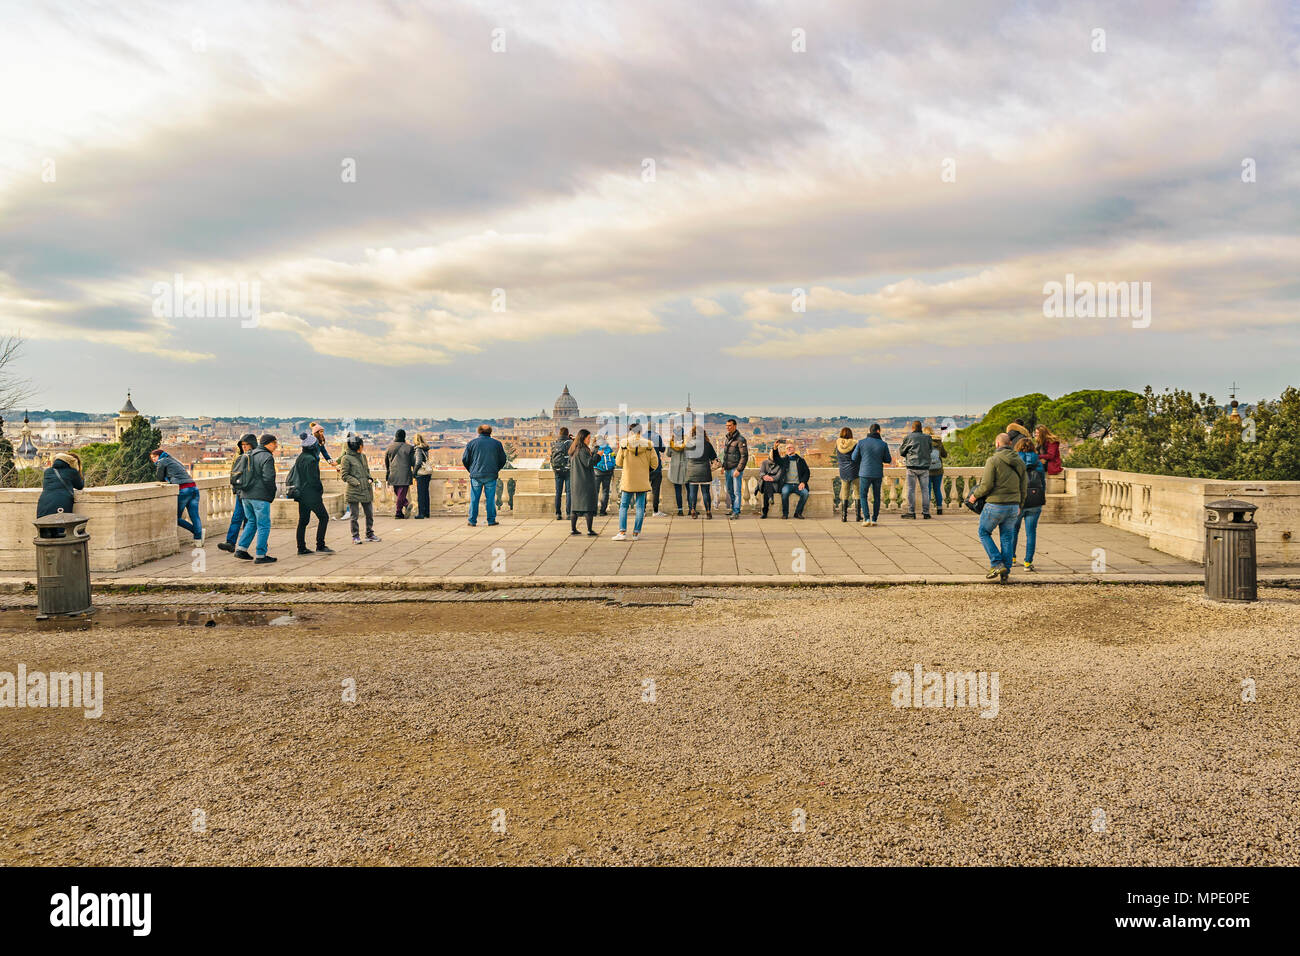 ROME, ITALY, DECEMBER - 2017 - Group of tourist watching and taking photos of Rome cityscape from monte pincio viewpoint. - Stock Image